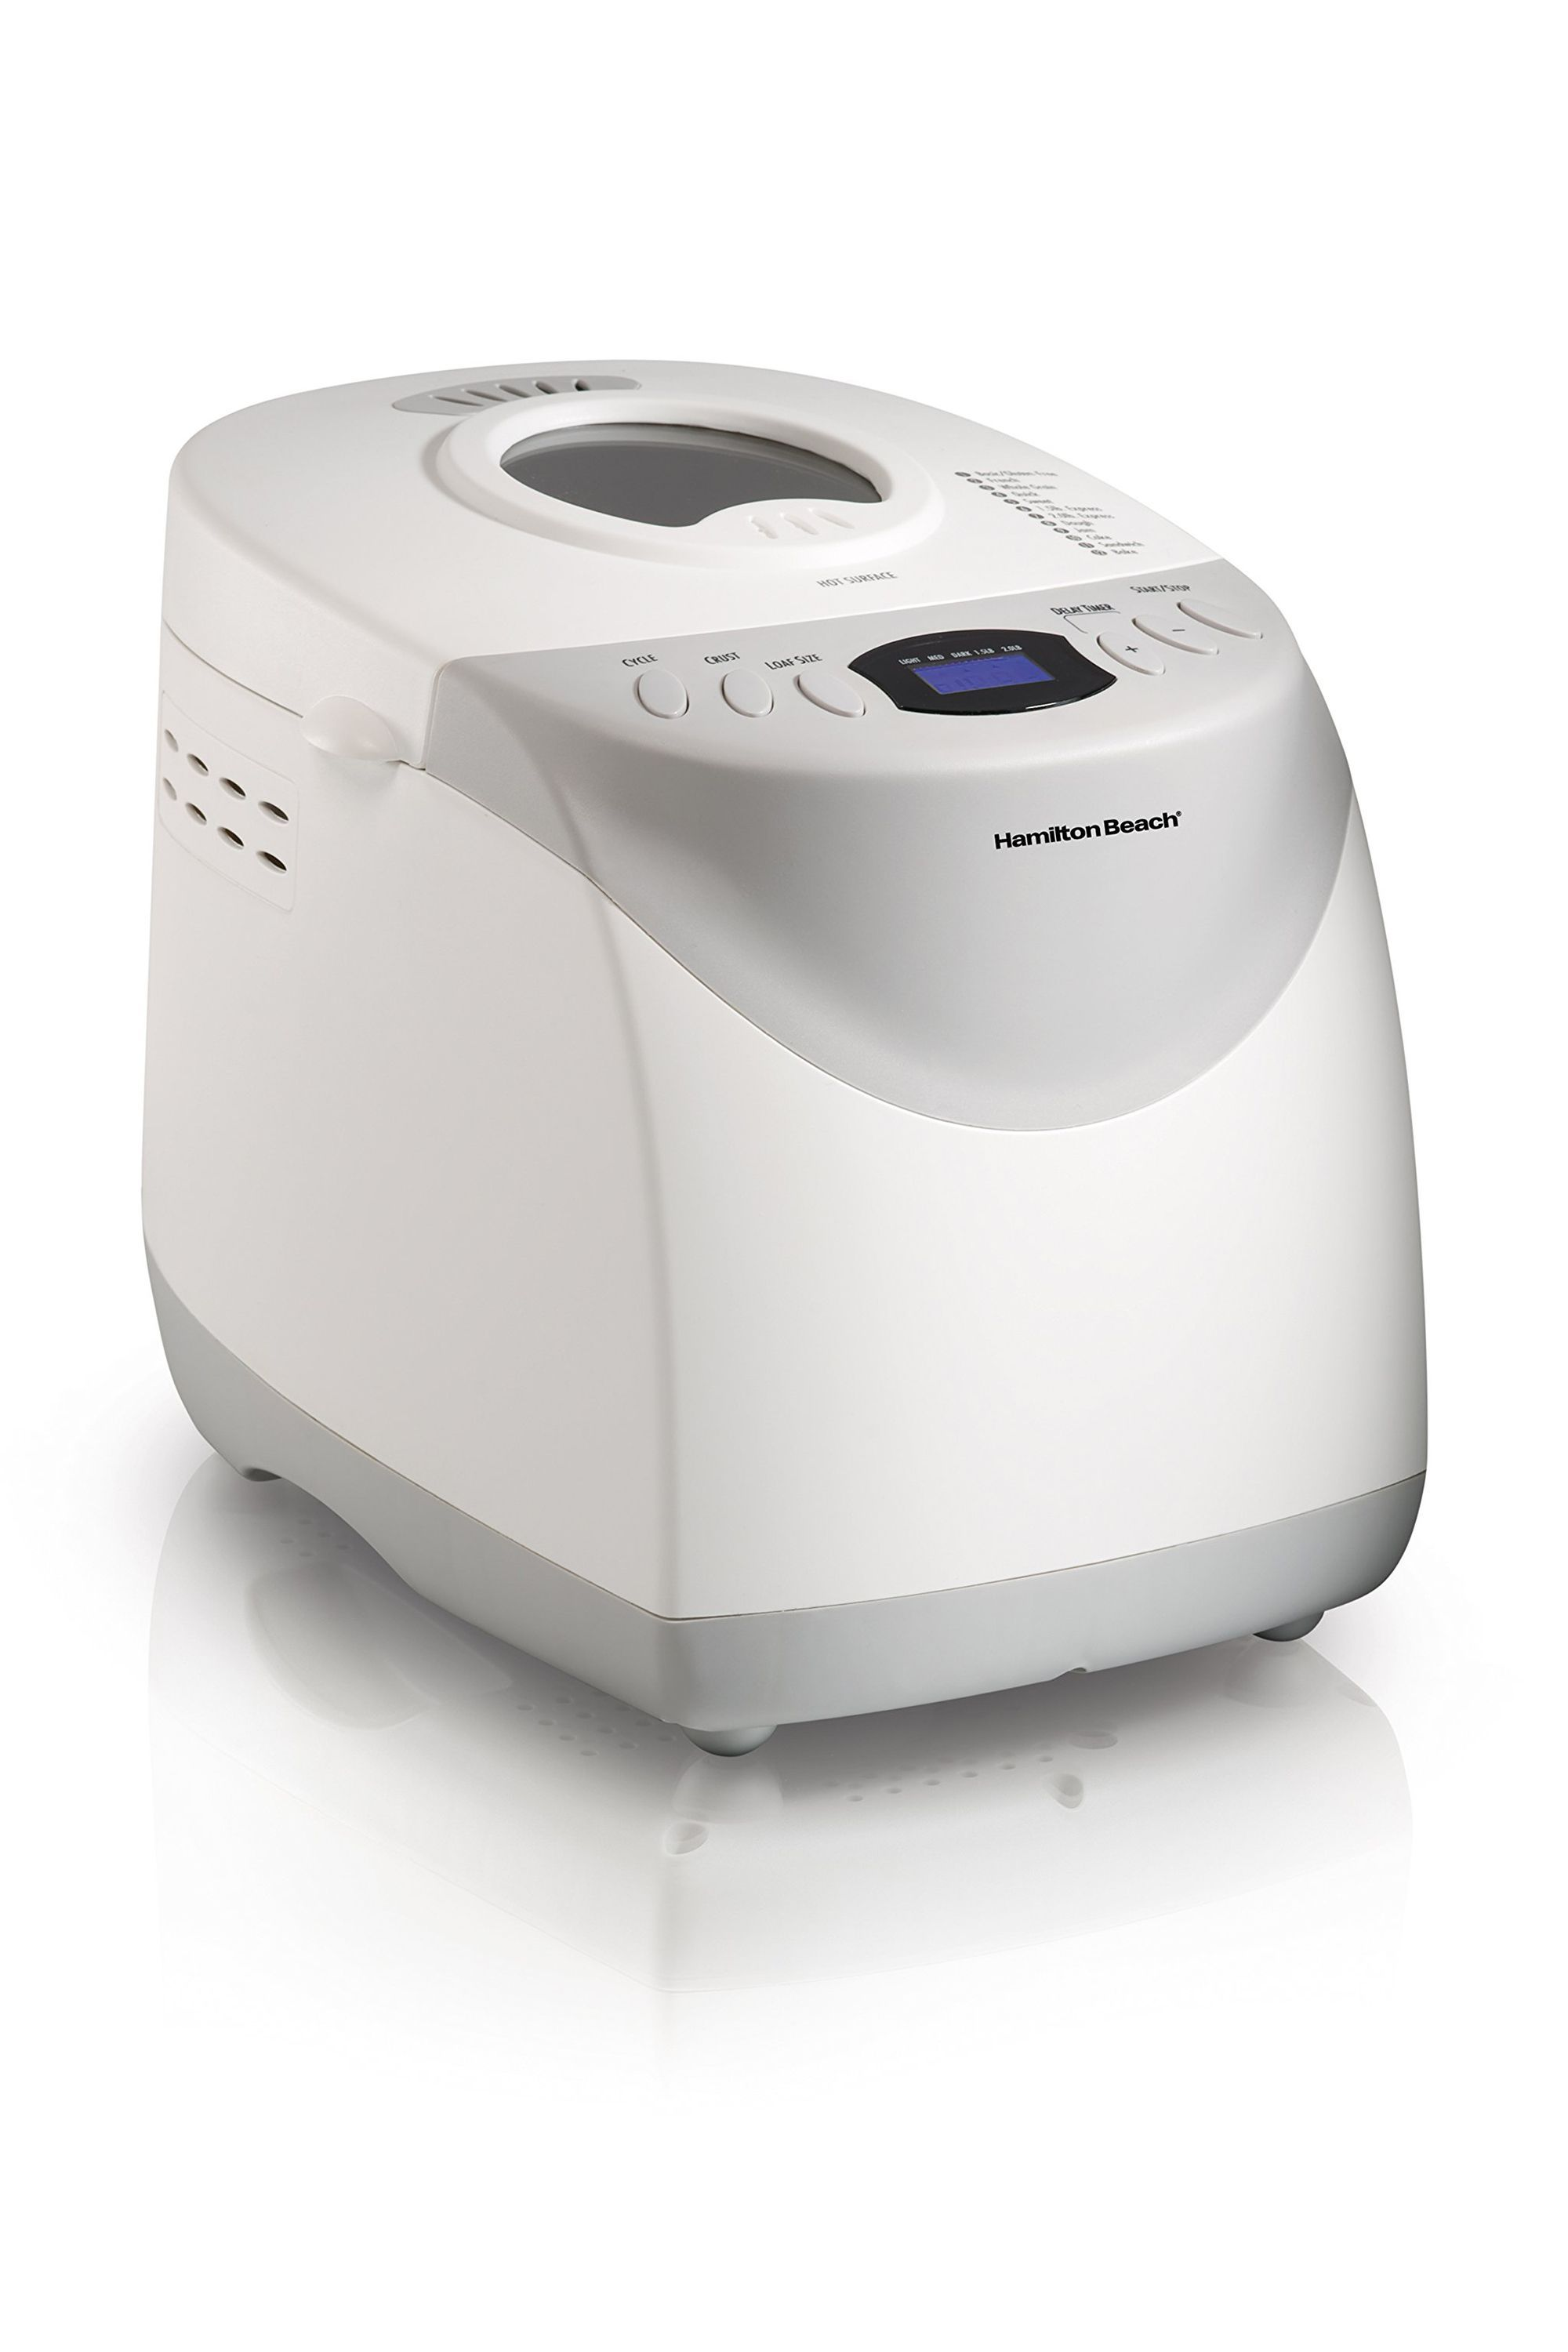 HomeBaker 2 Pound Automatic Breadmaker Hamilton Beach walmart.com $41.99 SHOP NOW The only thing better than bread is freshly made bread. This machine does just that, with a gluten-free setting too!